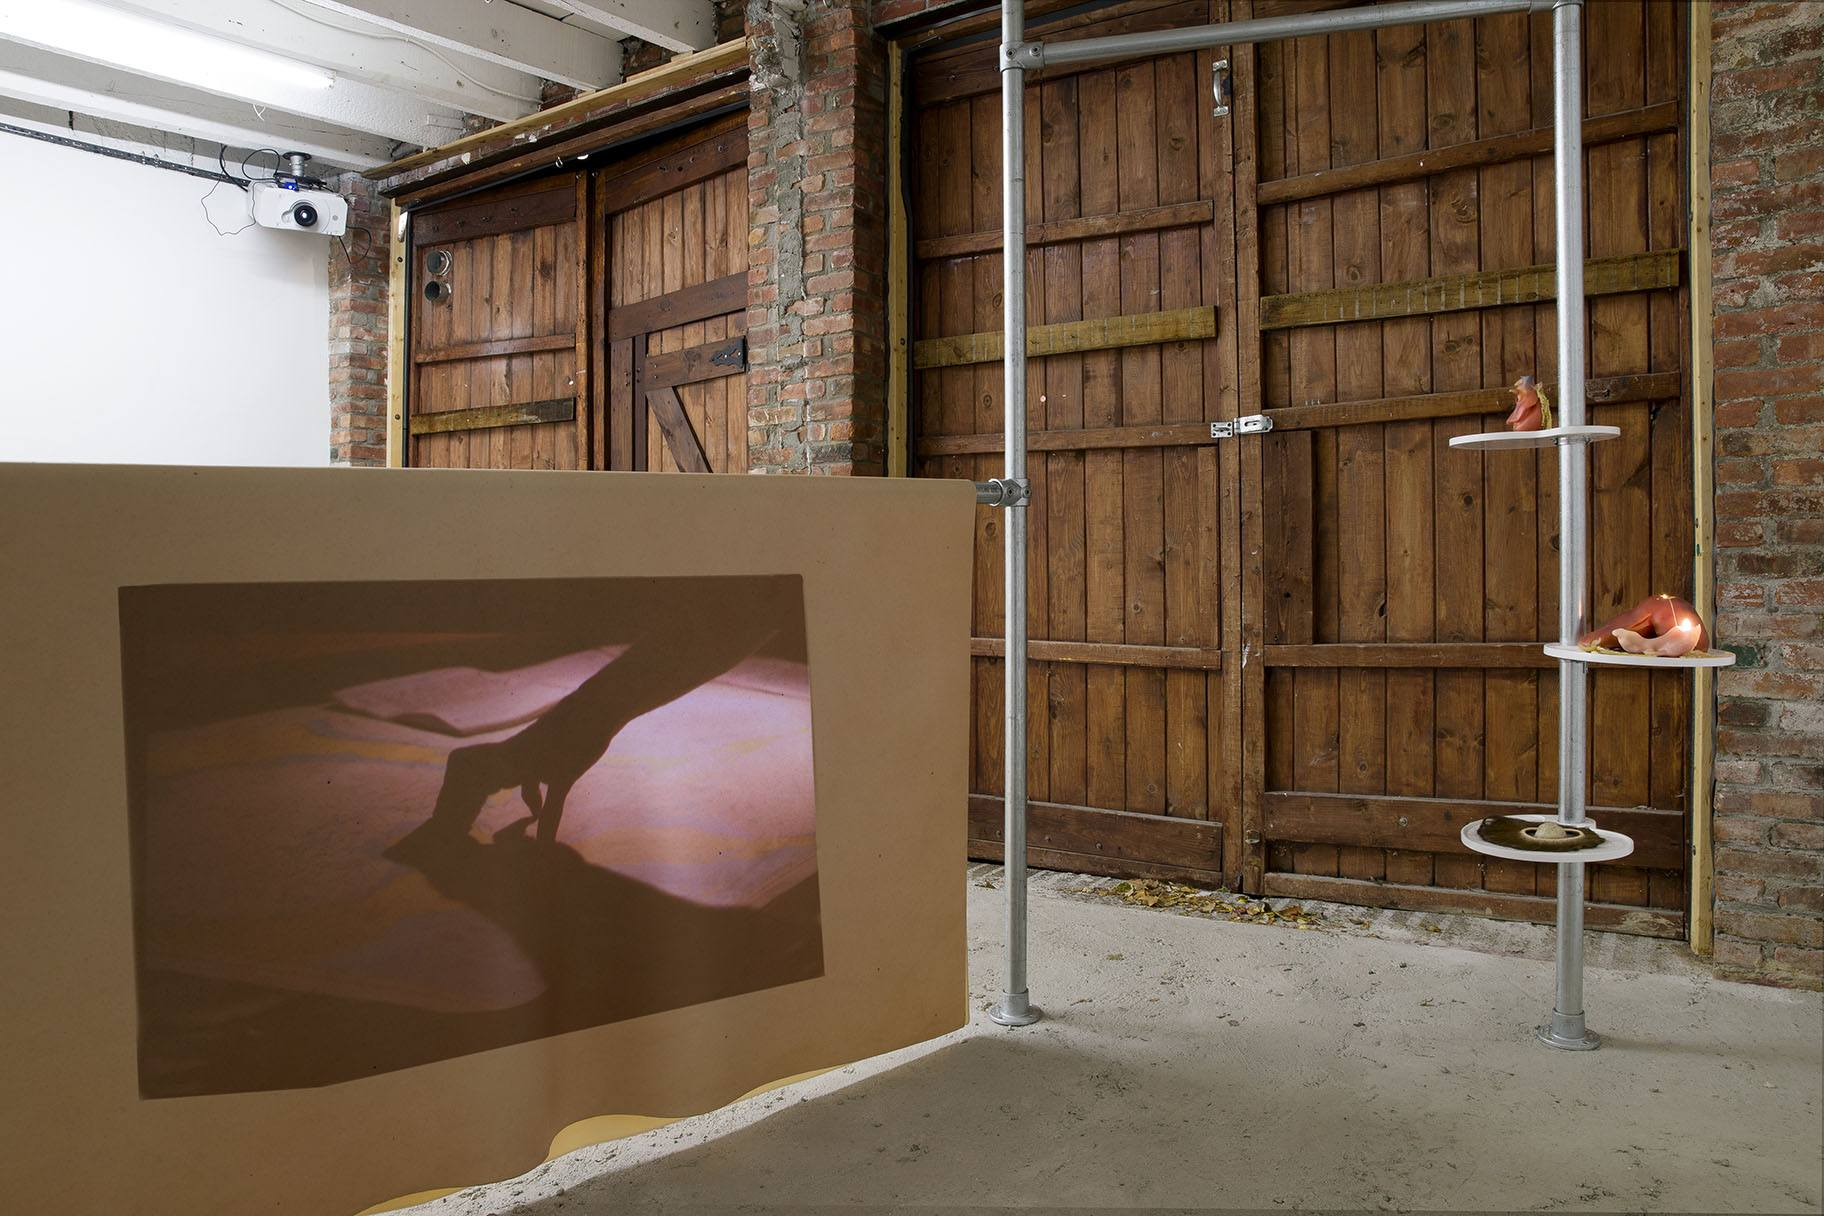 Melodie Mousset - Installation view. Photo by Guillaume Ziccarelli